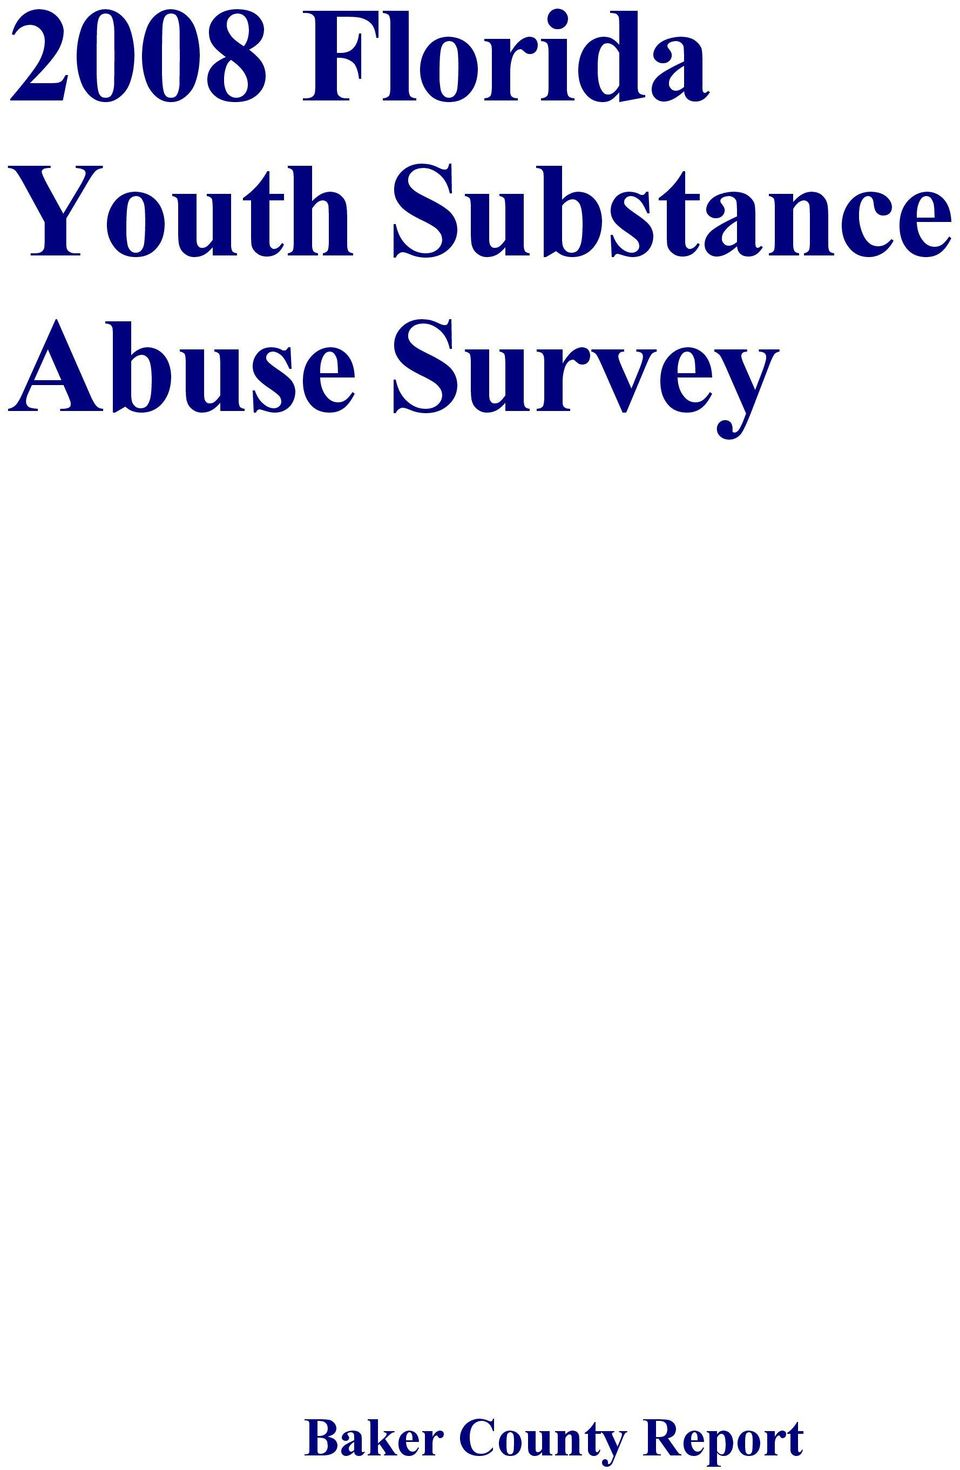 Abuse Survey